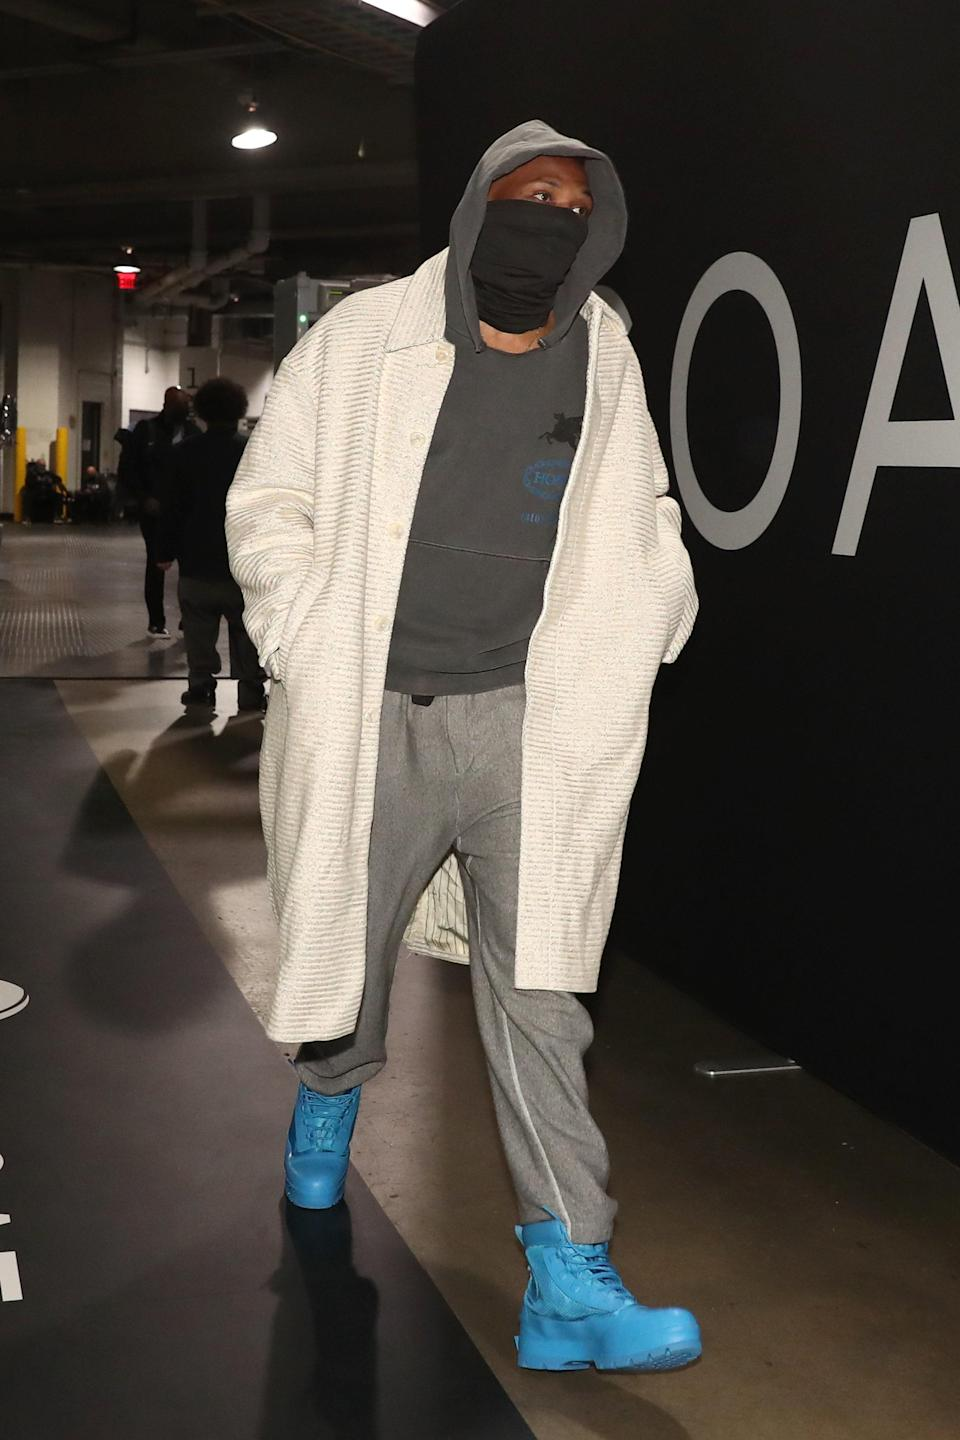 Russell Westbrook of the Washington Wizards arrives to a game against the Brooklyn Nets in Brooklyn, January 3, 2021.